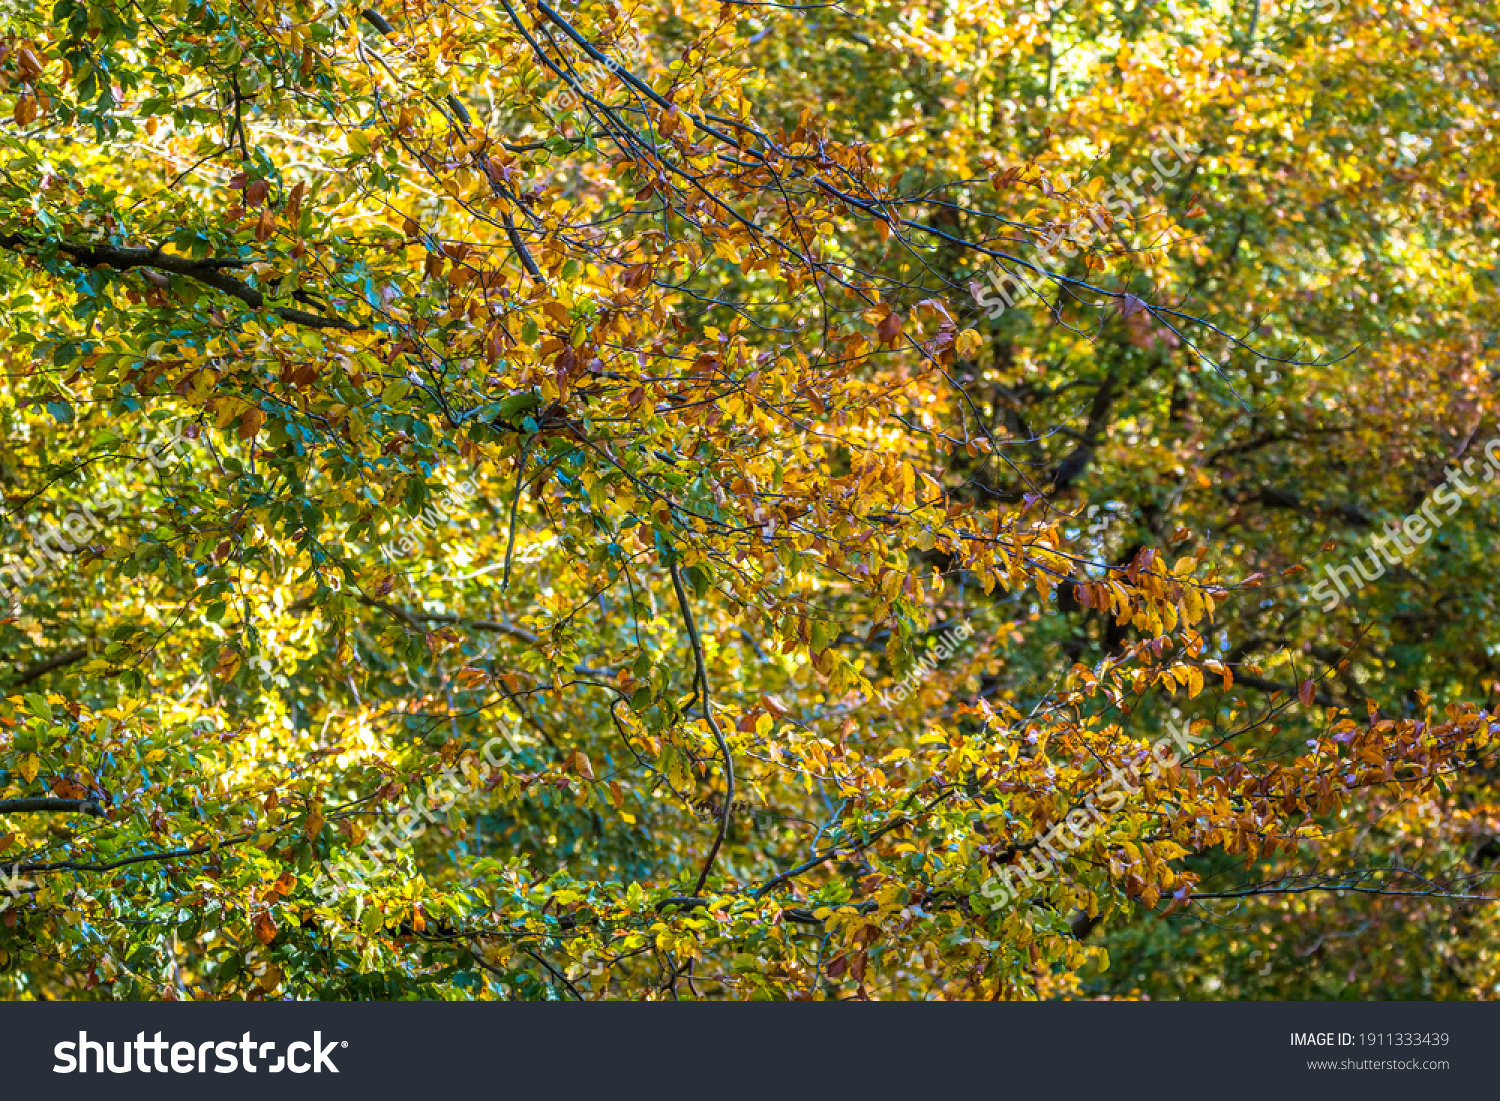 Autumn colours in the tree canopy, United Kingdom #1911333439